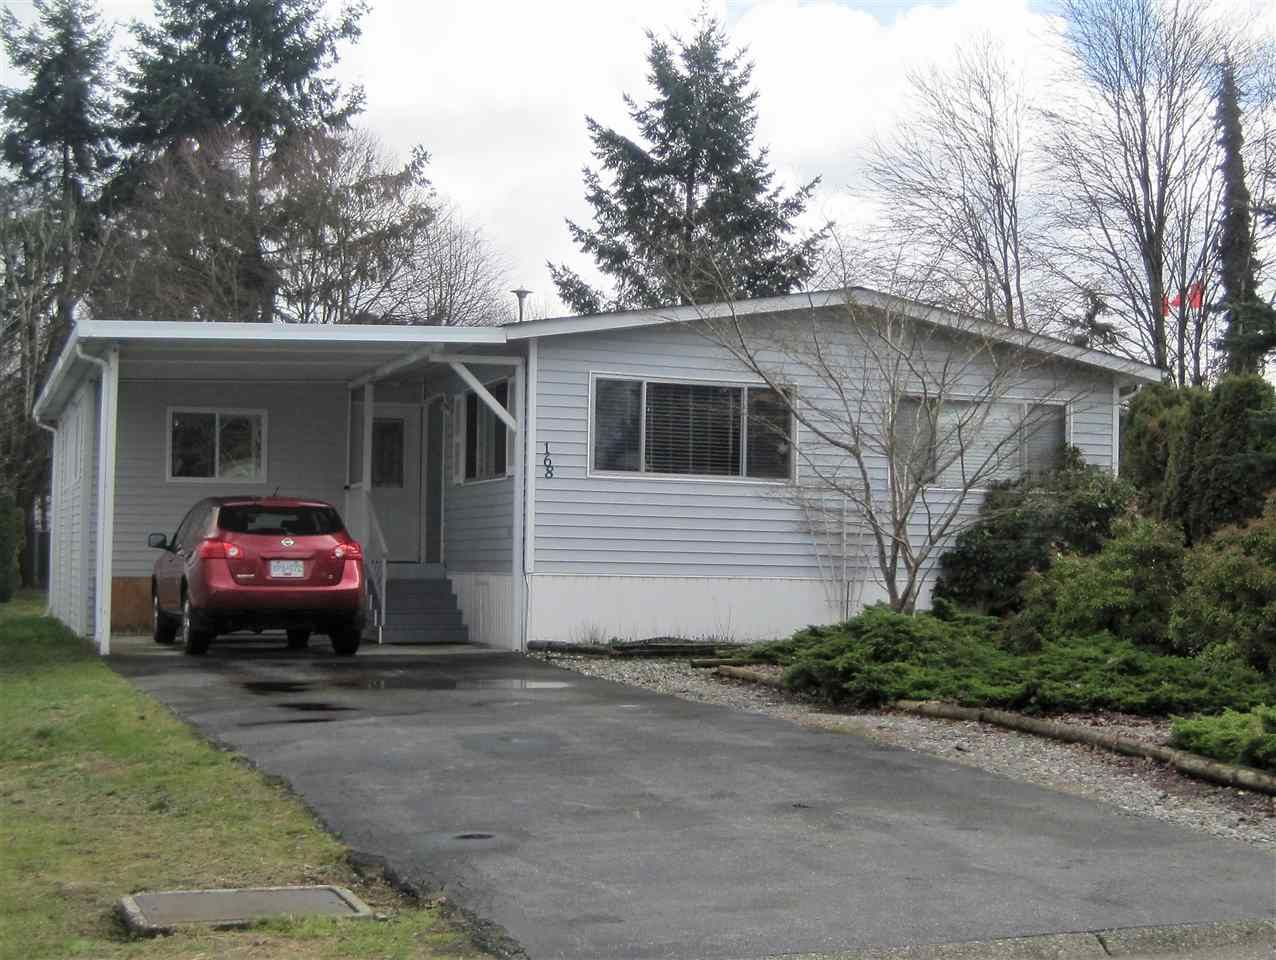 """Main Photo: 168 145 KING EDWARD Street in Coquitlam: Maillardville Manufactured Home for sale in """"MILL CREEK VILLAGE"""" : MLS®# R2037334"""